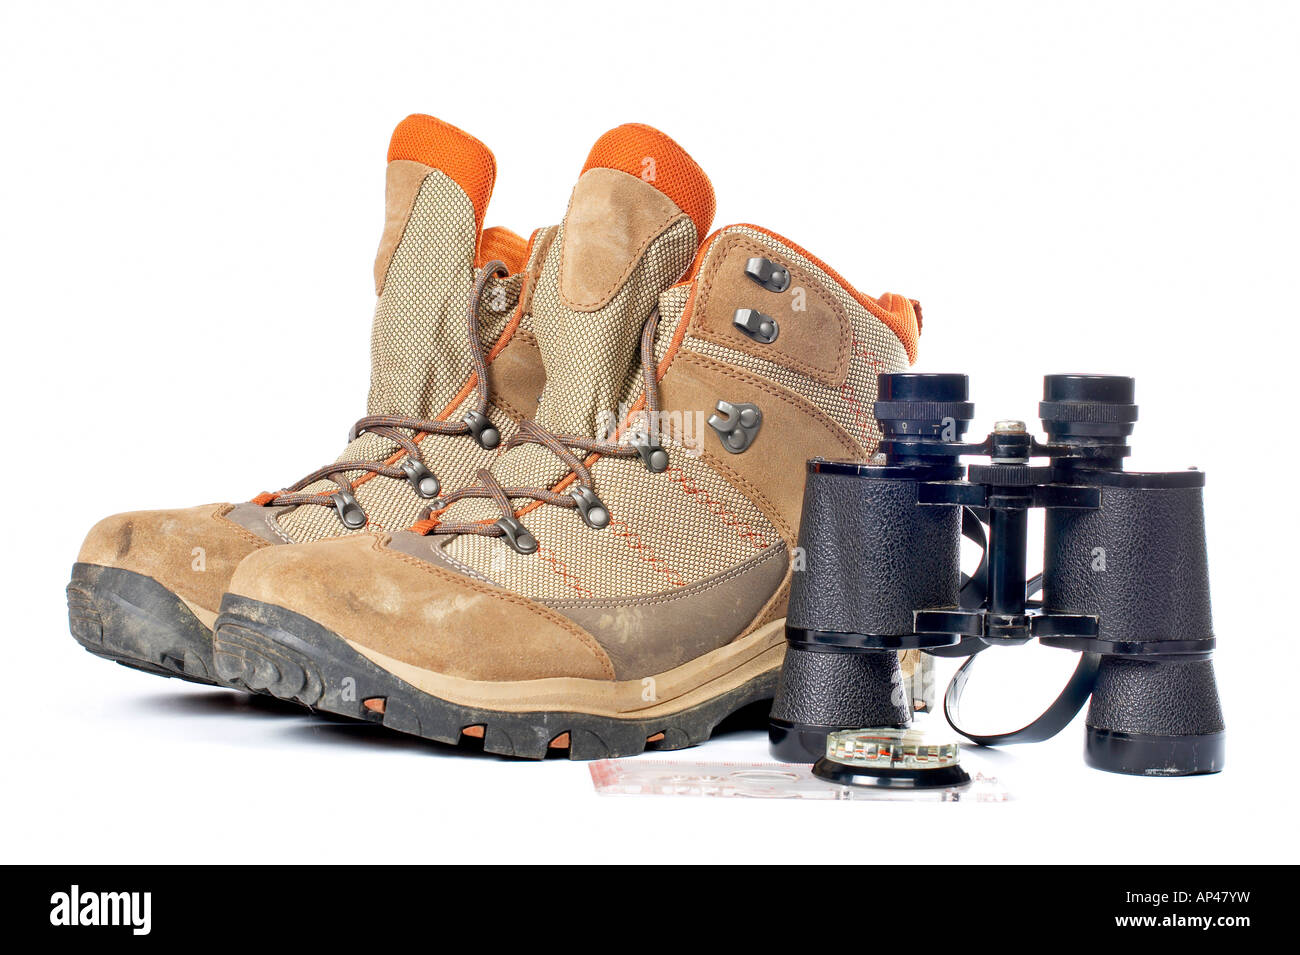 Hiking boots compass and binoculars on a white background - Stock Image